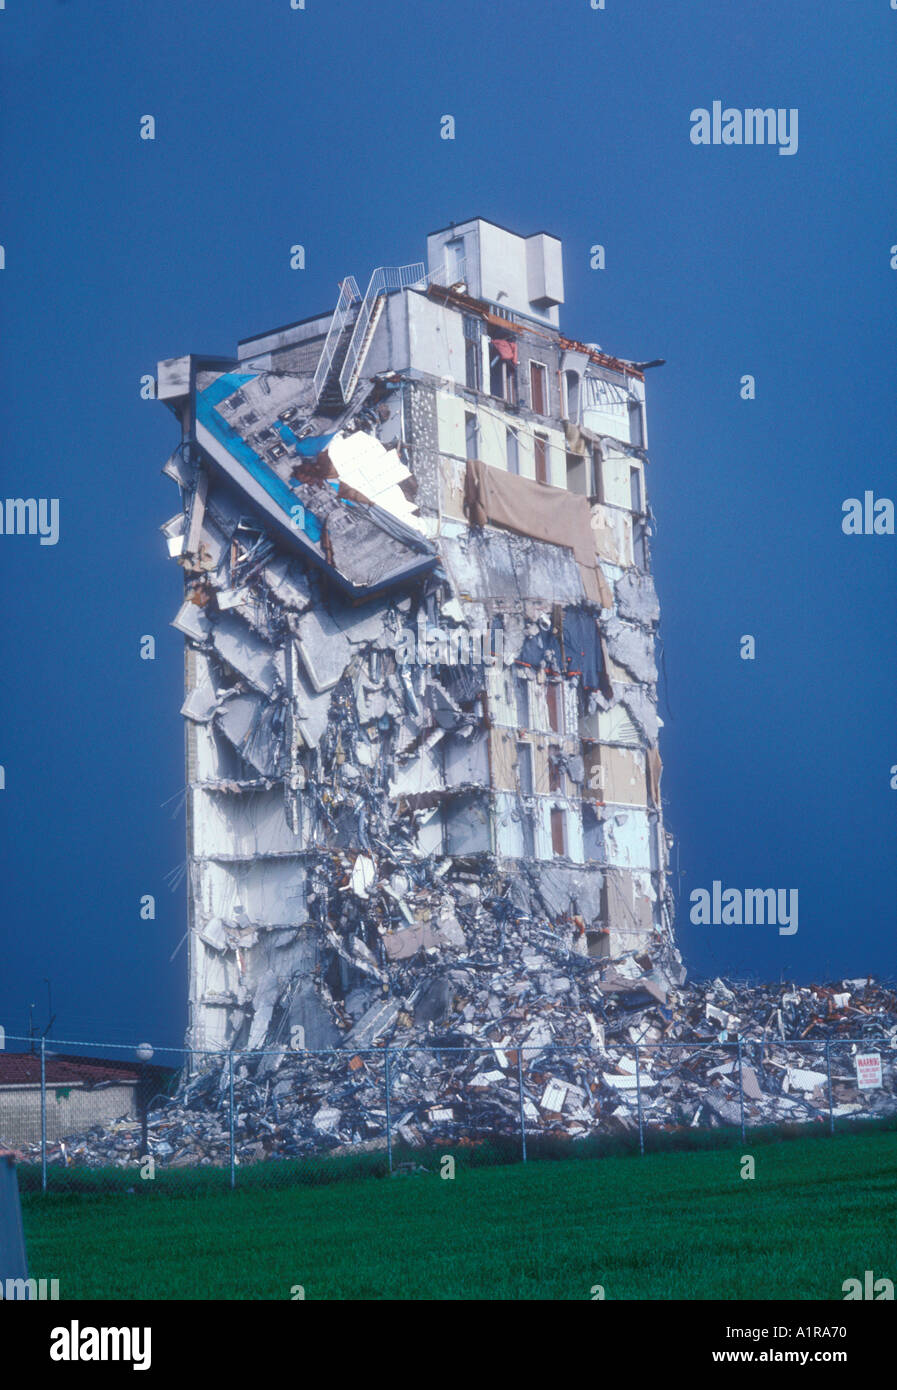 12 story condo being demolished due to construction problems - Stock Image